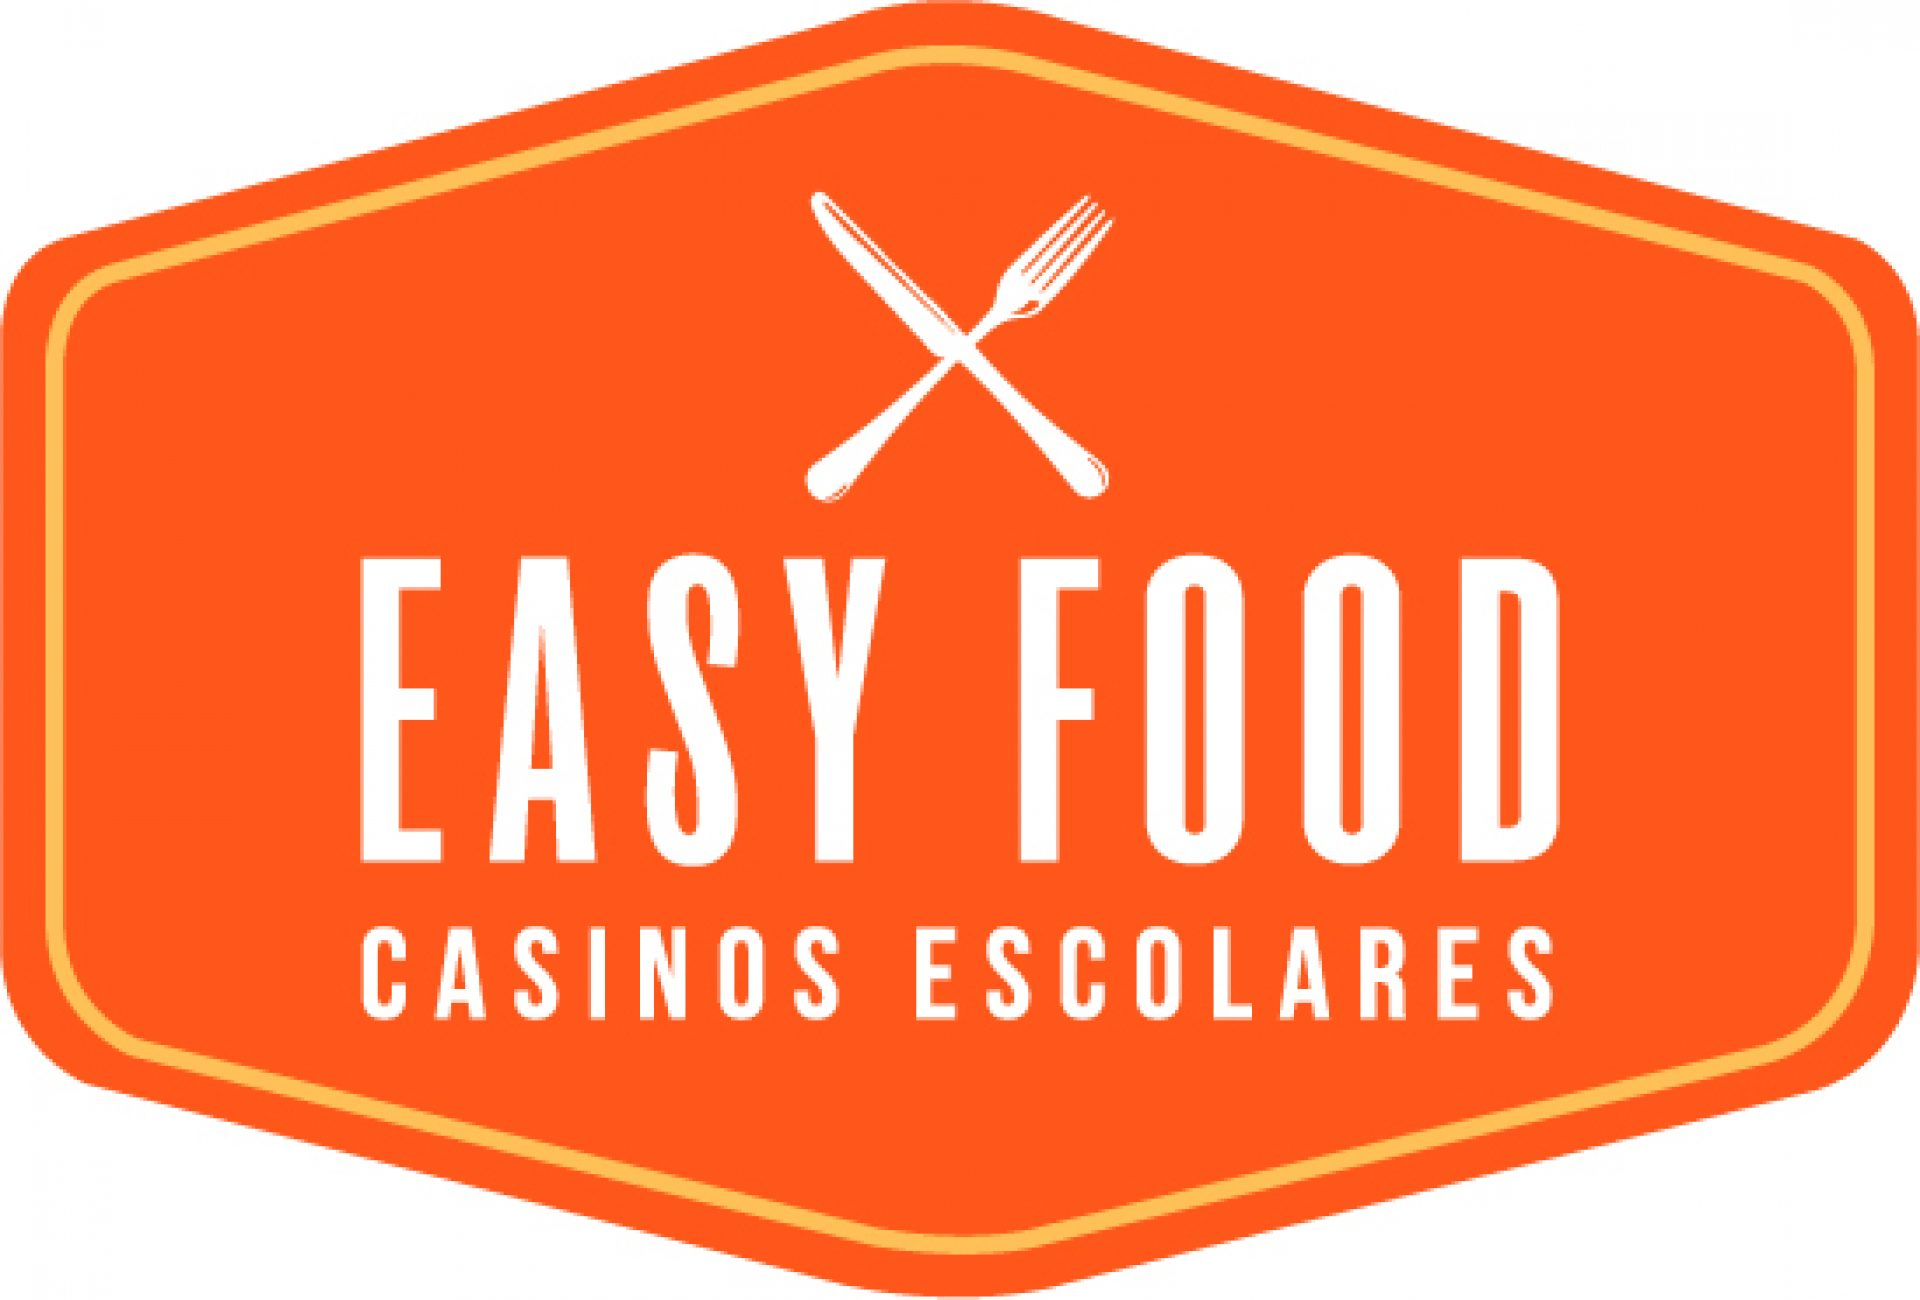 EASY FOOD CASINO